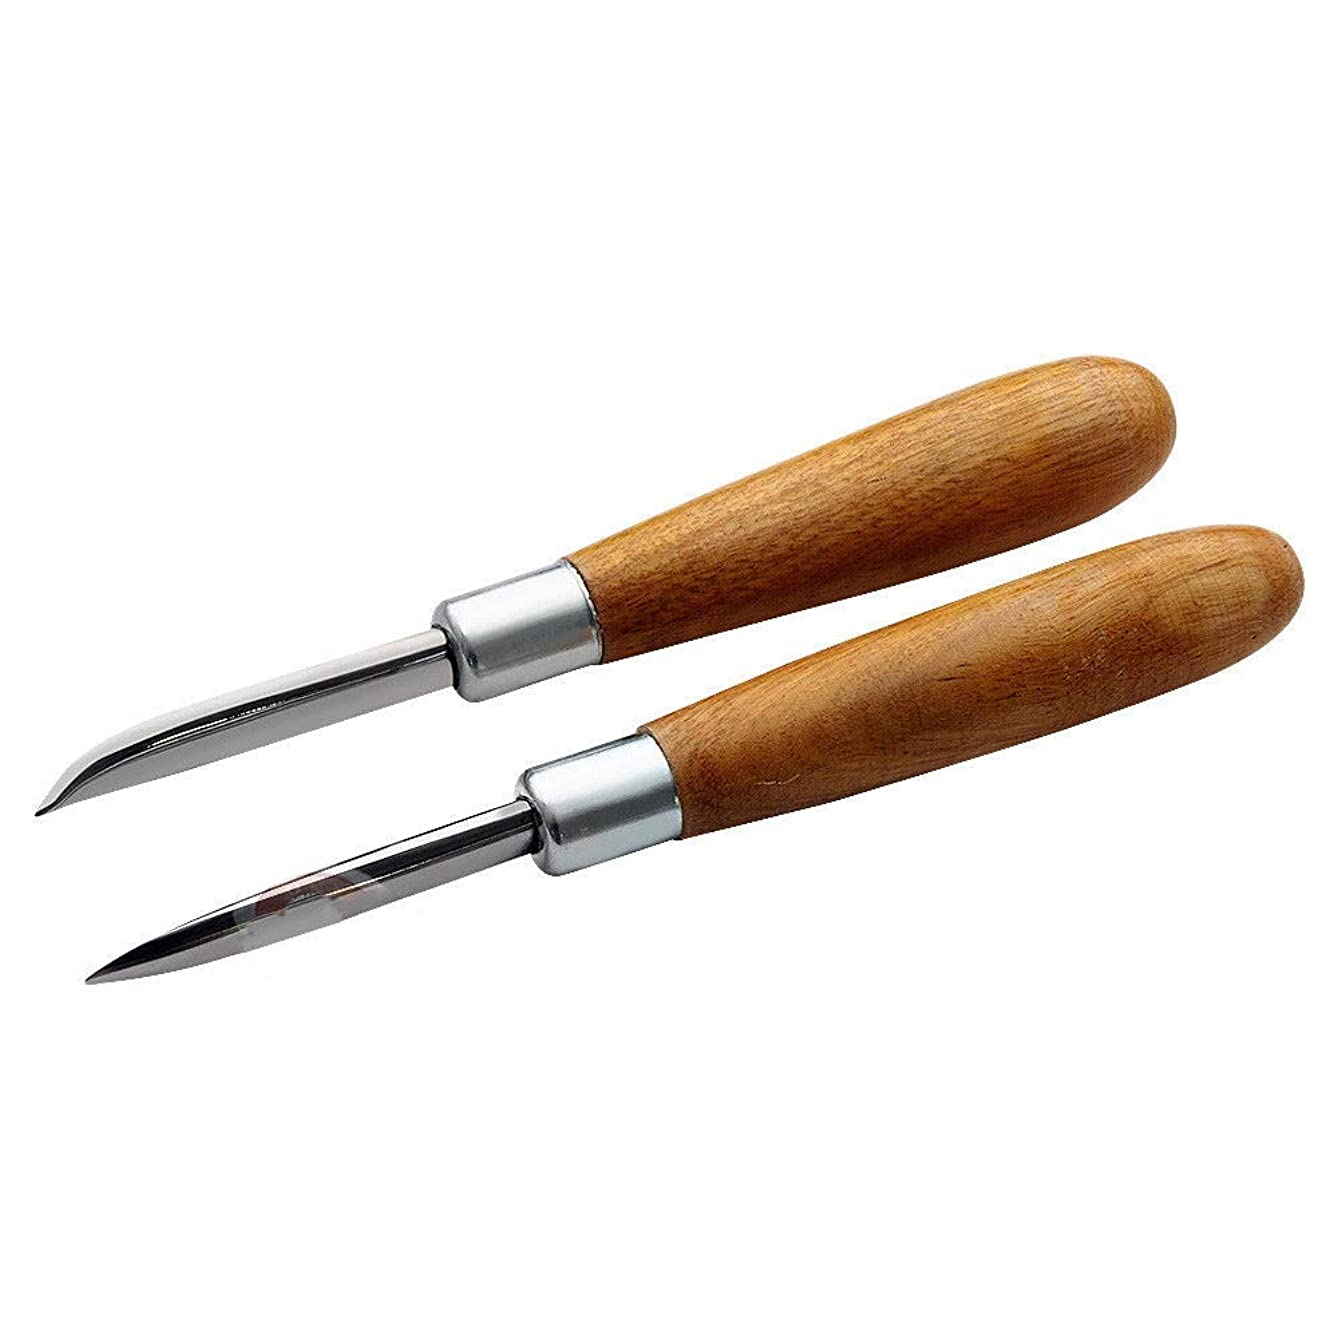 Burnishing Jewelery Tool Set Curved and Straight Burnishers Polished Wood Handle